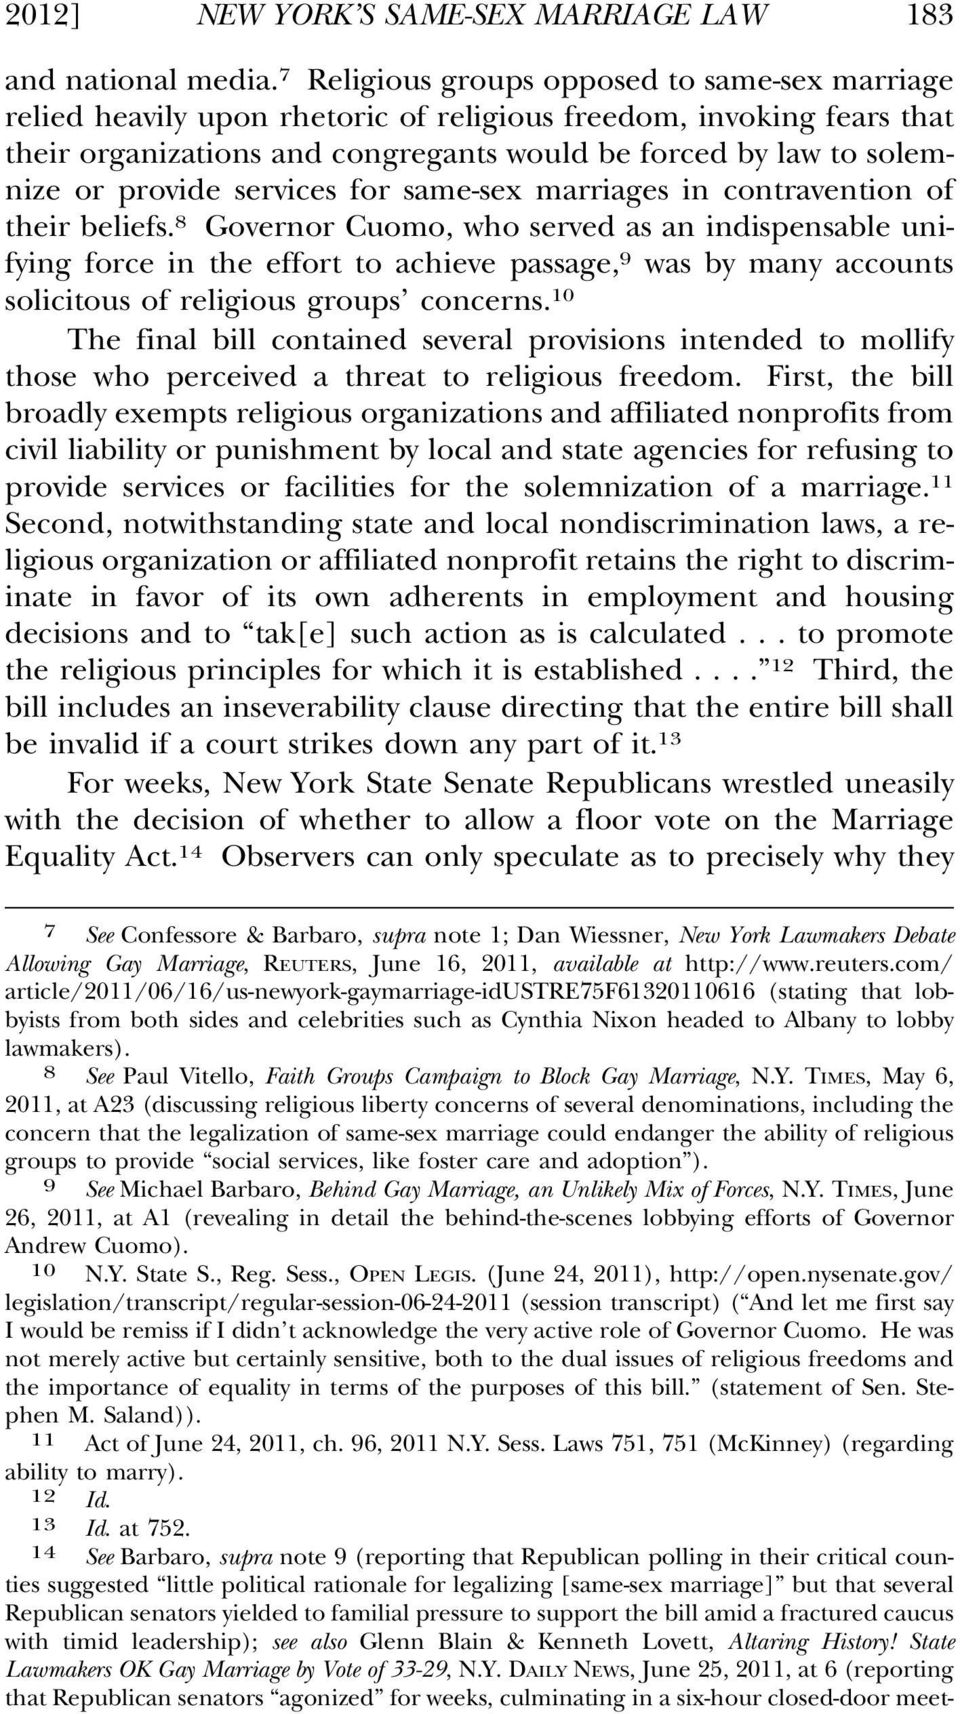 provide services for same-sex marriages in contravention of their beliefs.